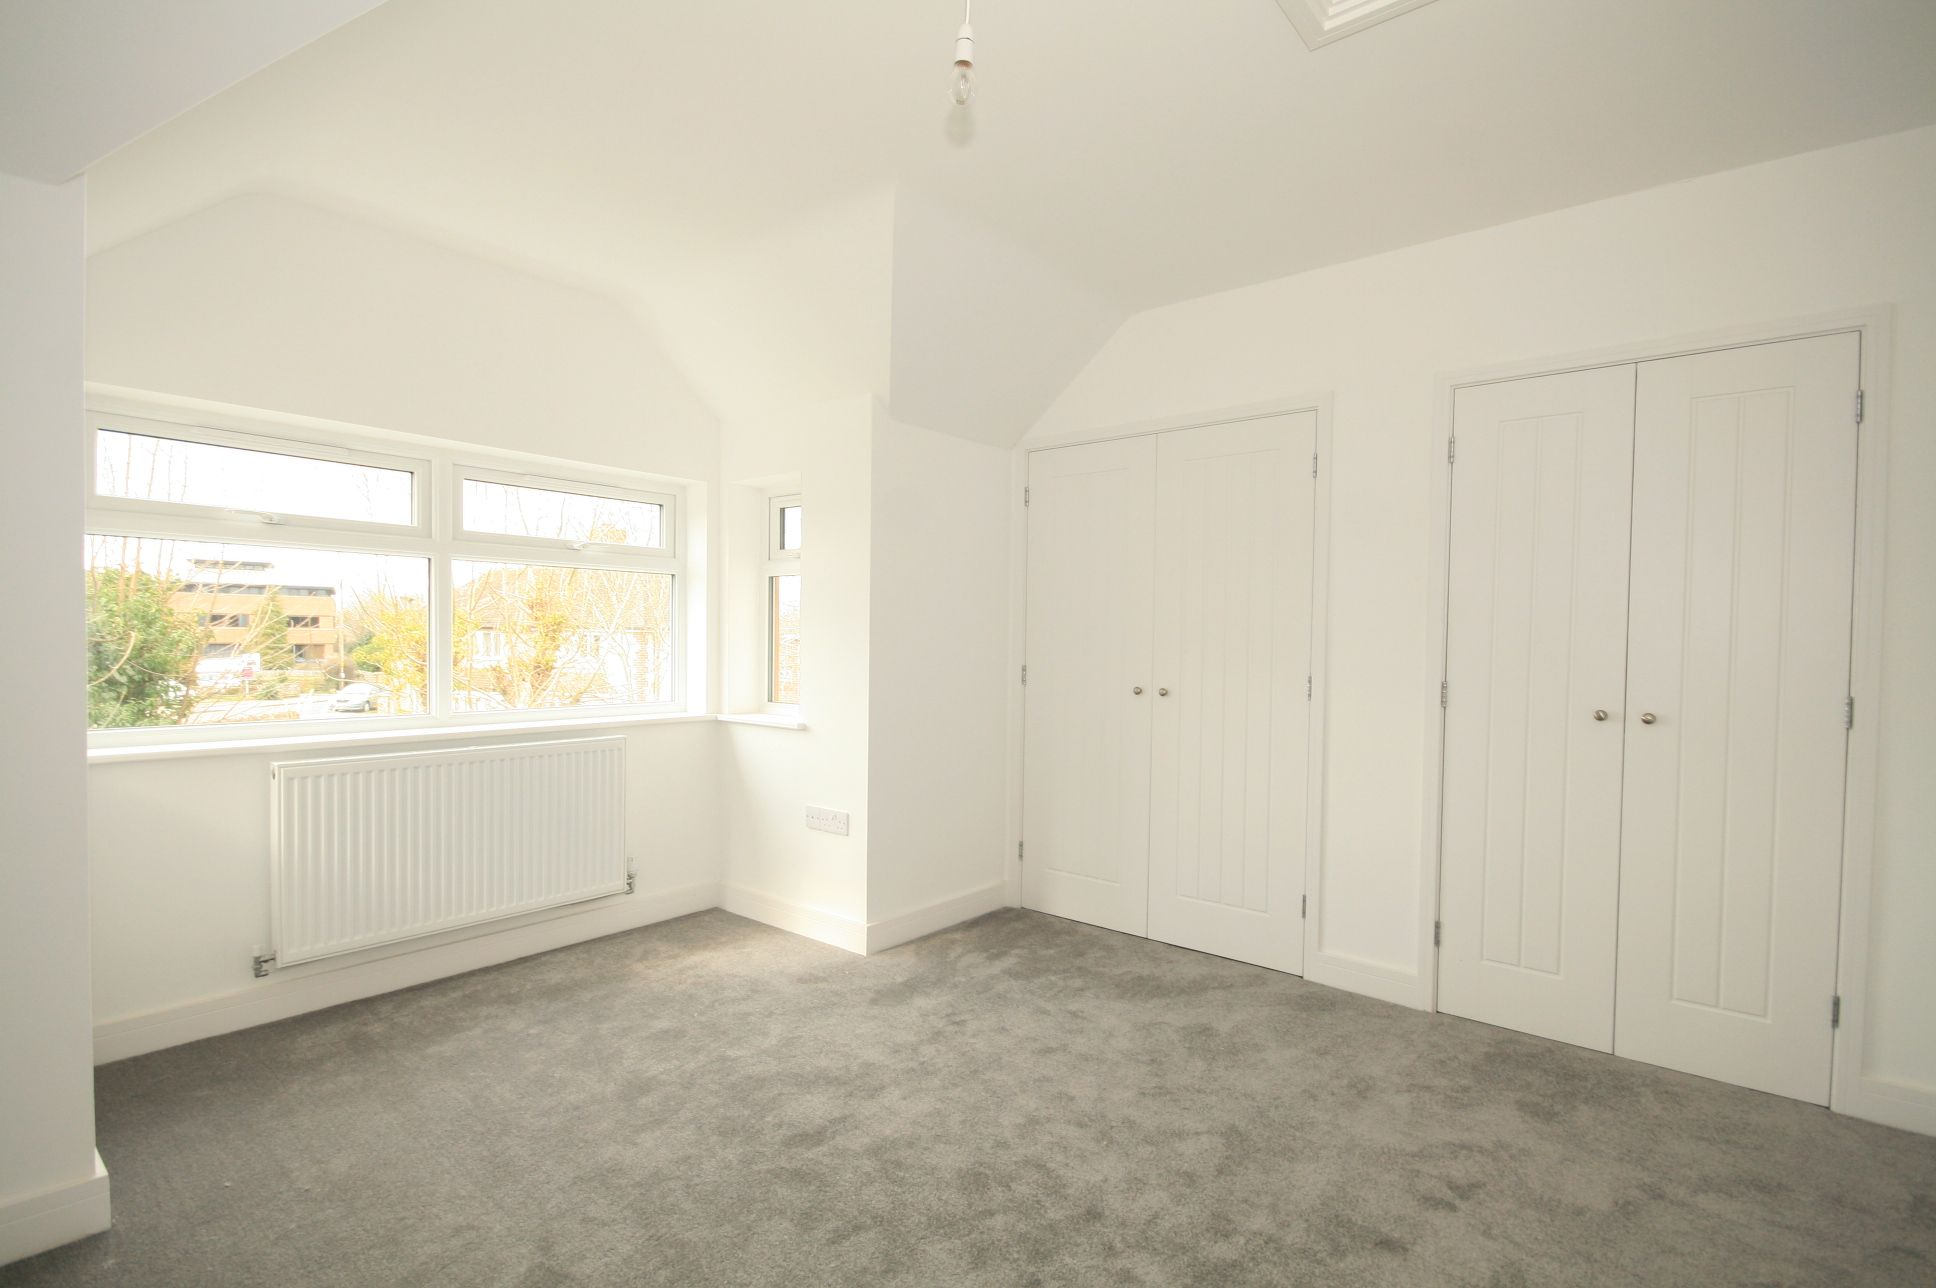 2 Bedroom Detached House For Sale - Photograph 6